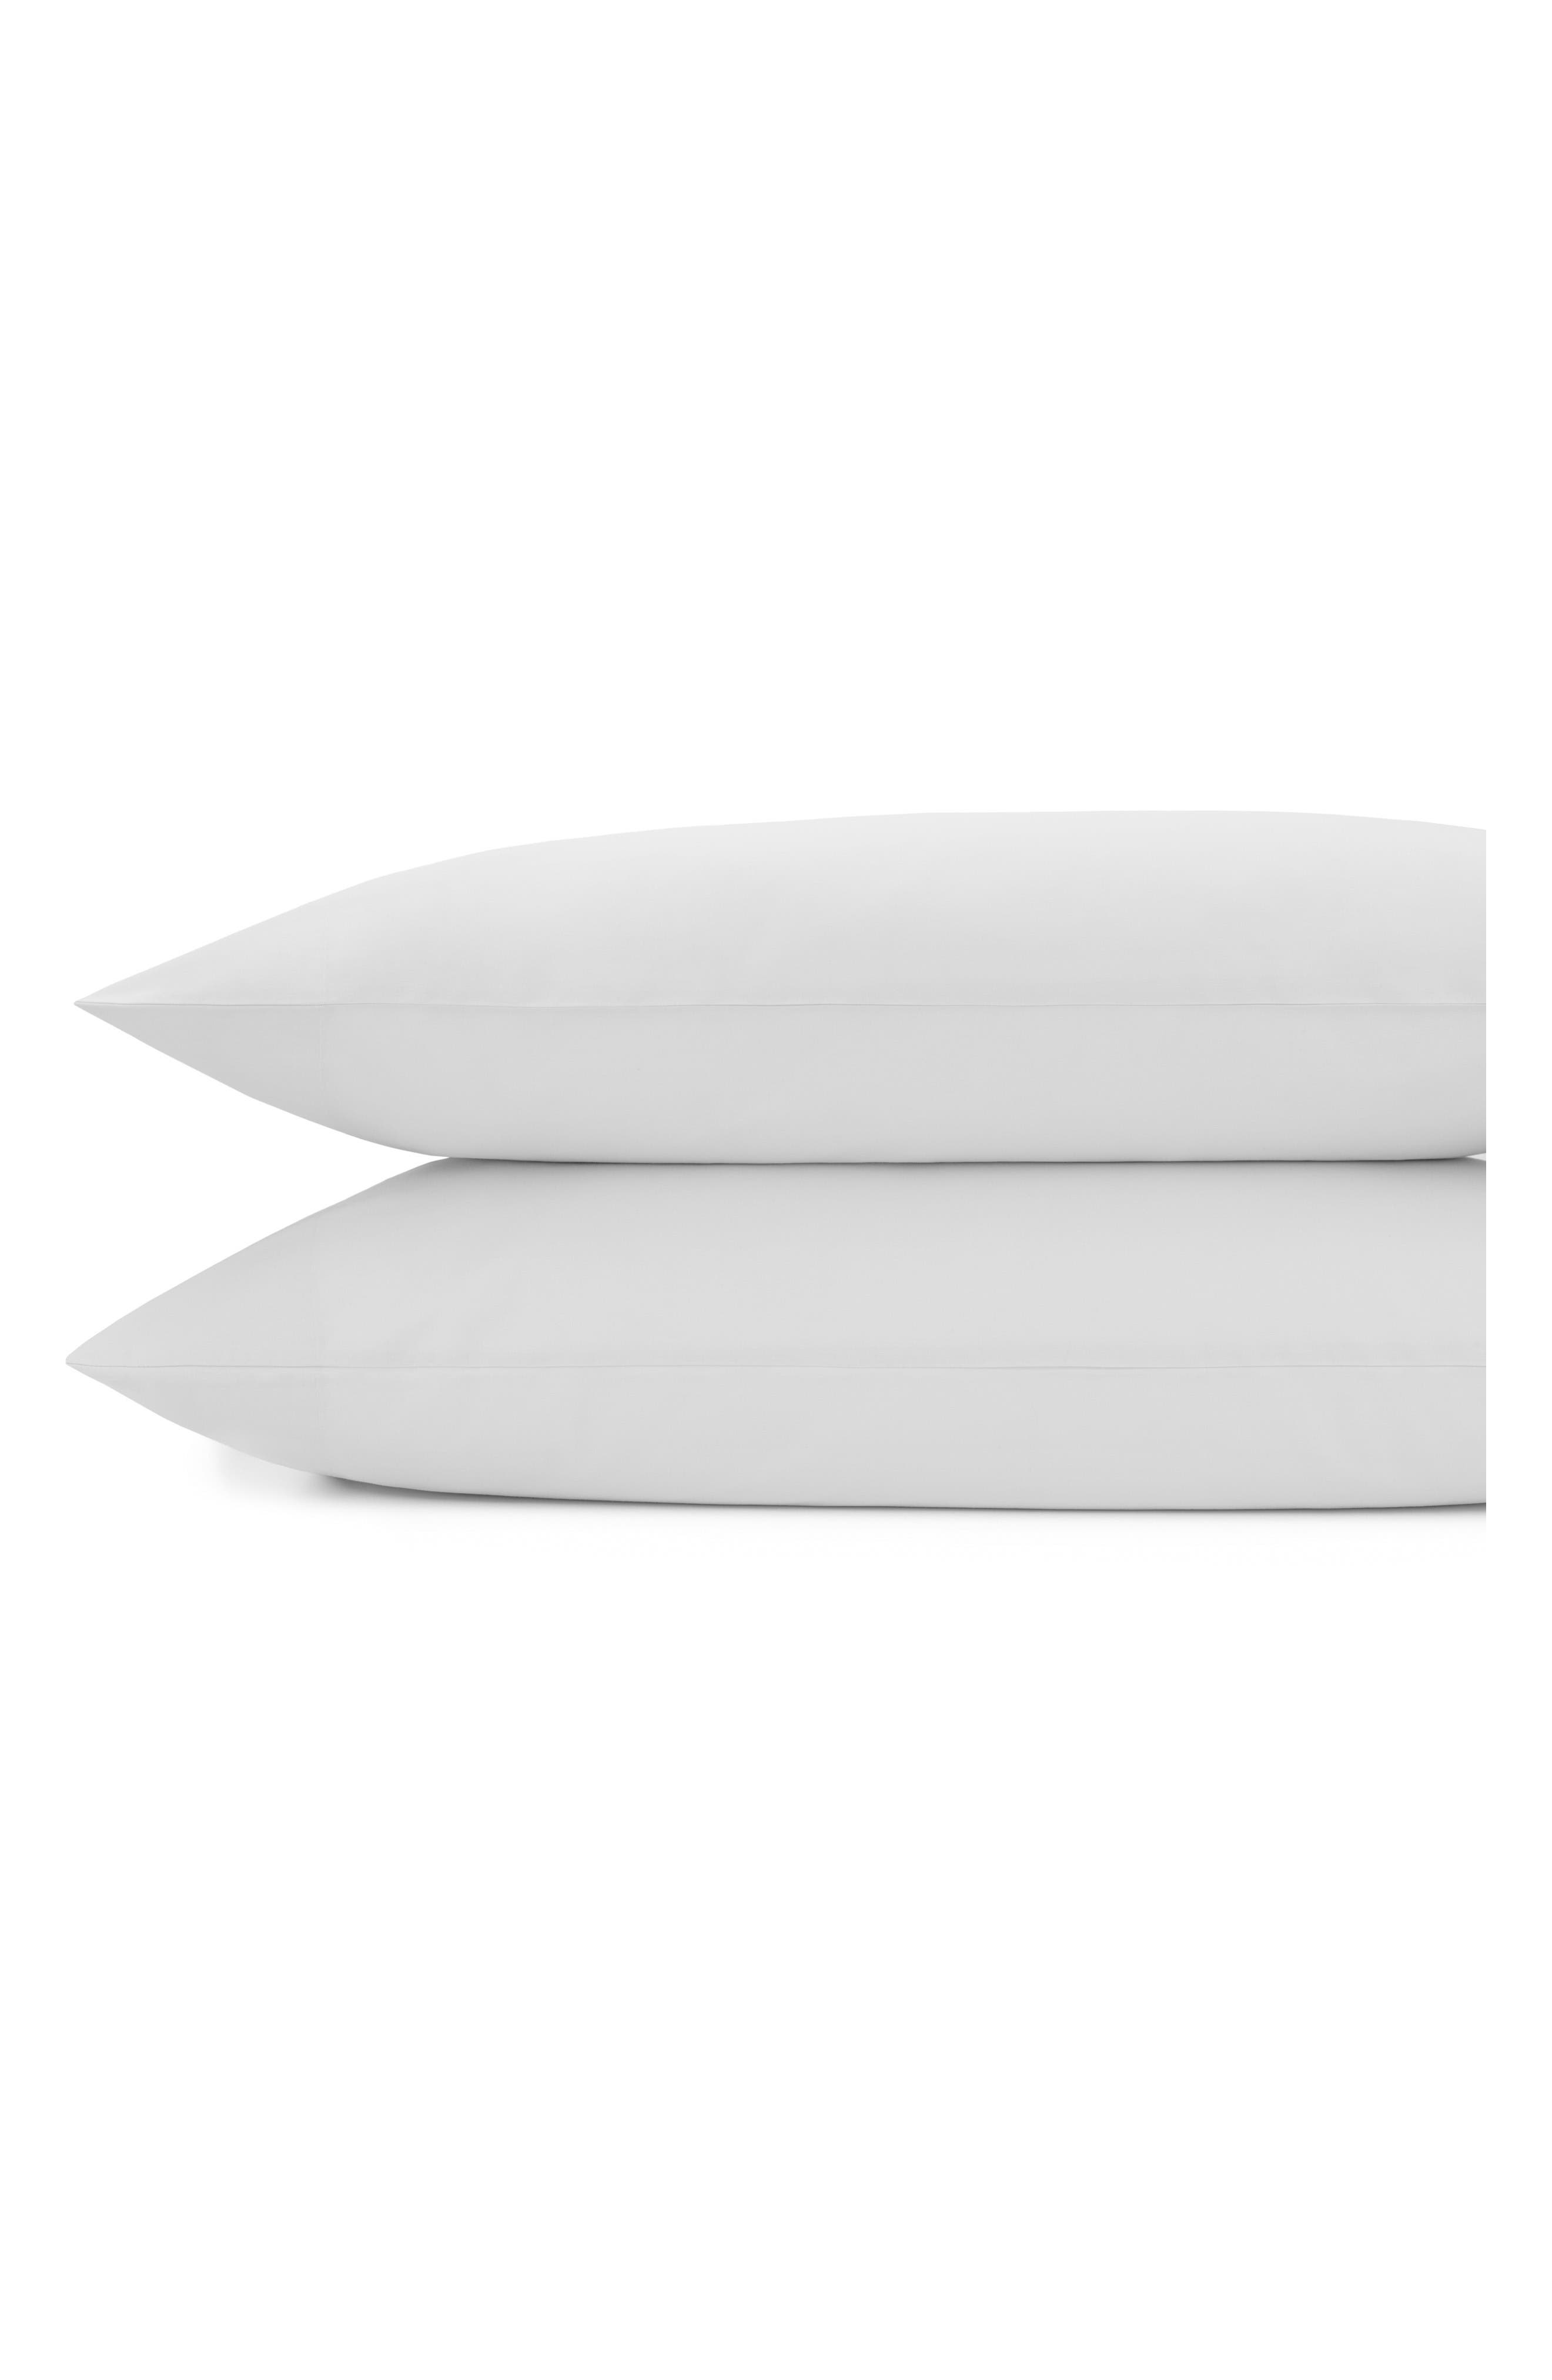 Main Image - UGG® Downtime Set of 2 Percale Pillowcases